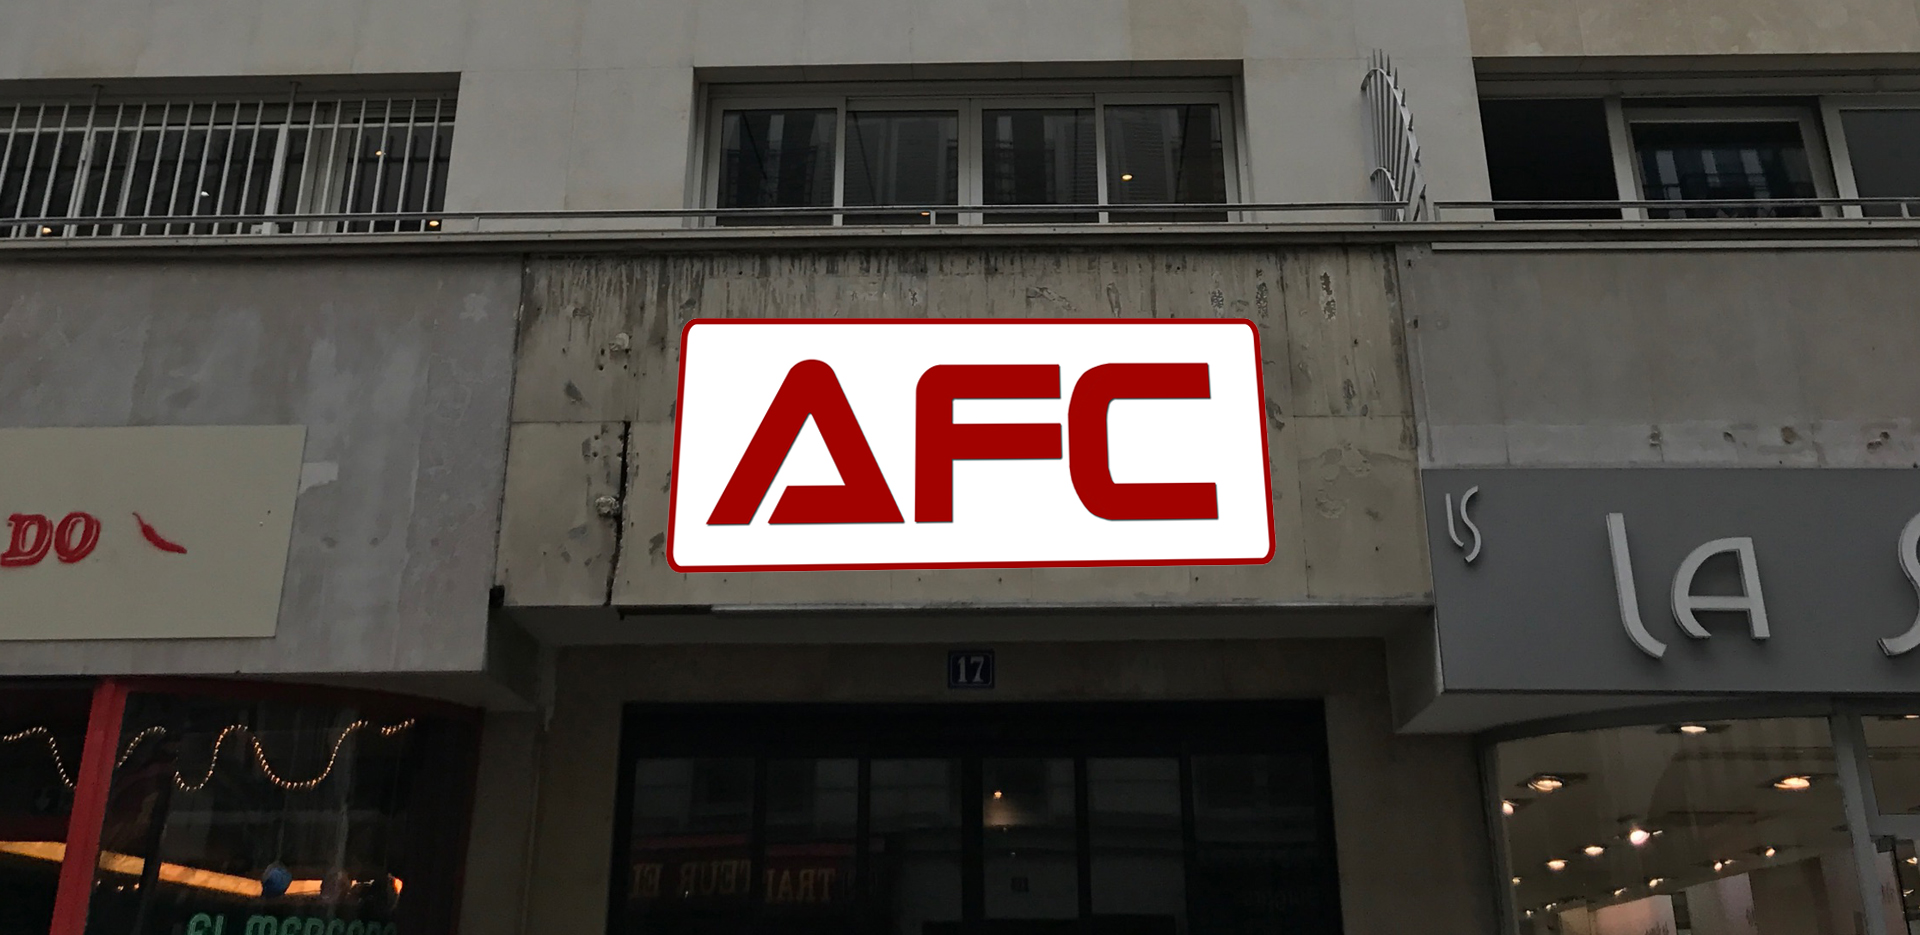 Choisir AFC - Centre affaire a Paris